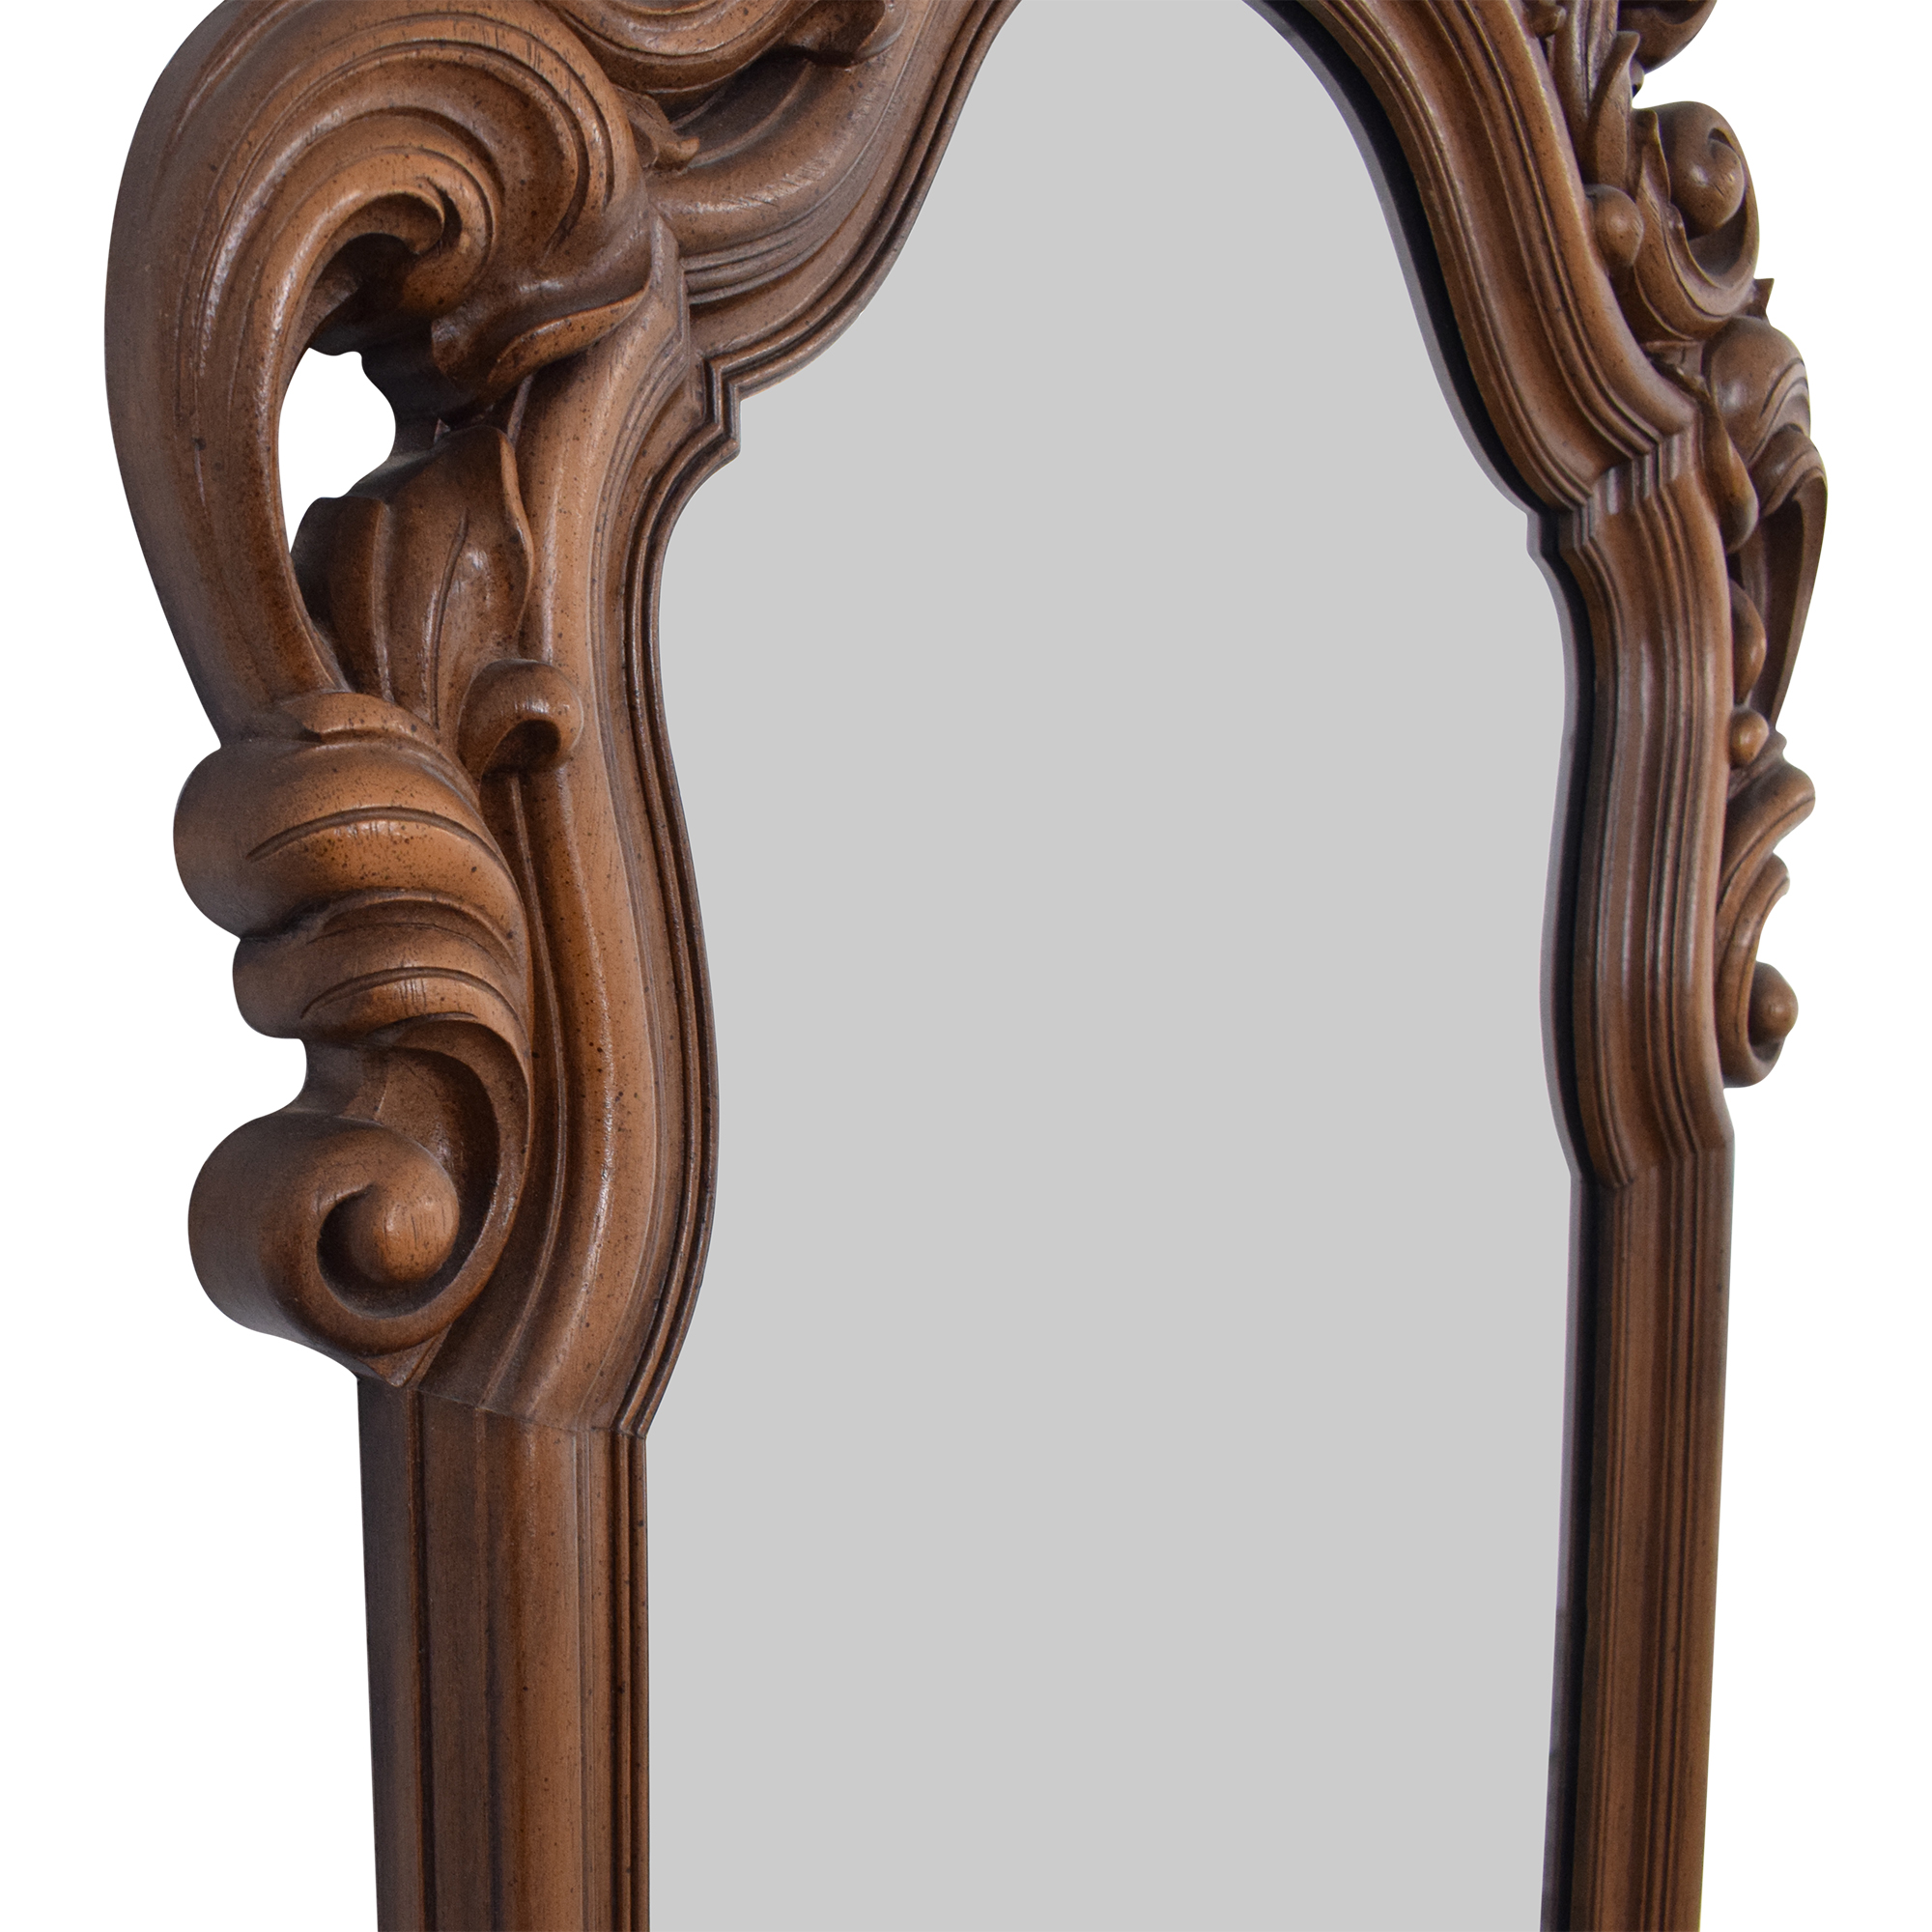 buy Broyhill Venetian Style Accent Mirror Broyhill Furniture Mirrors